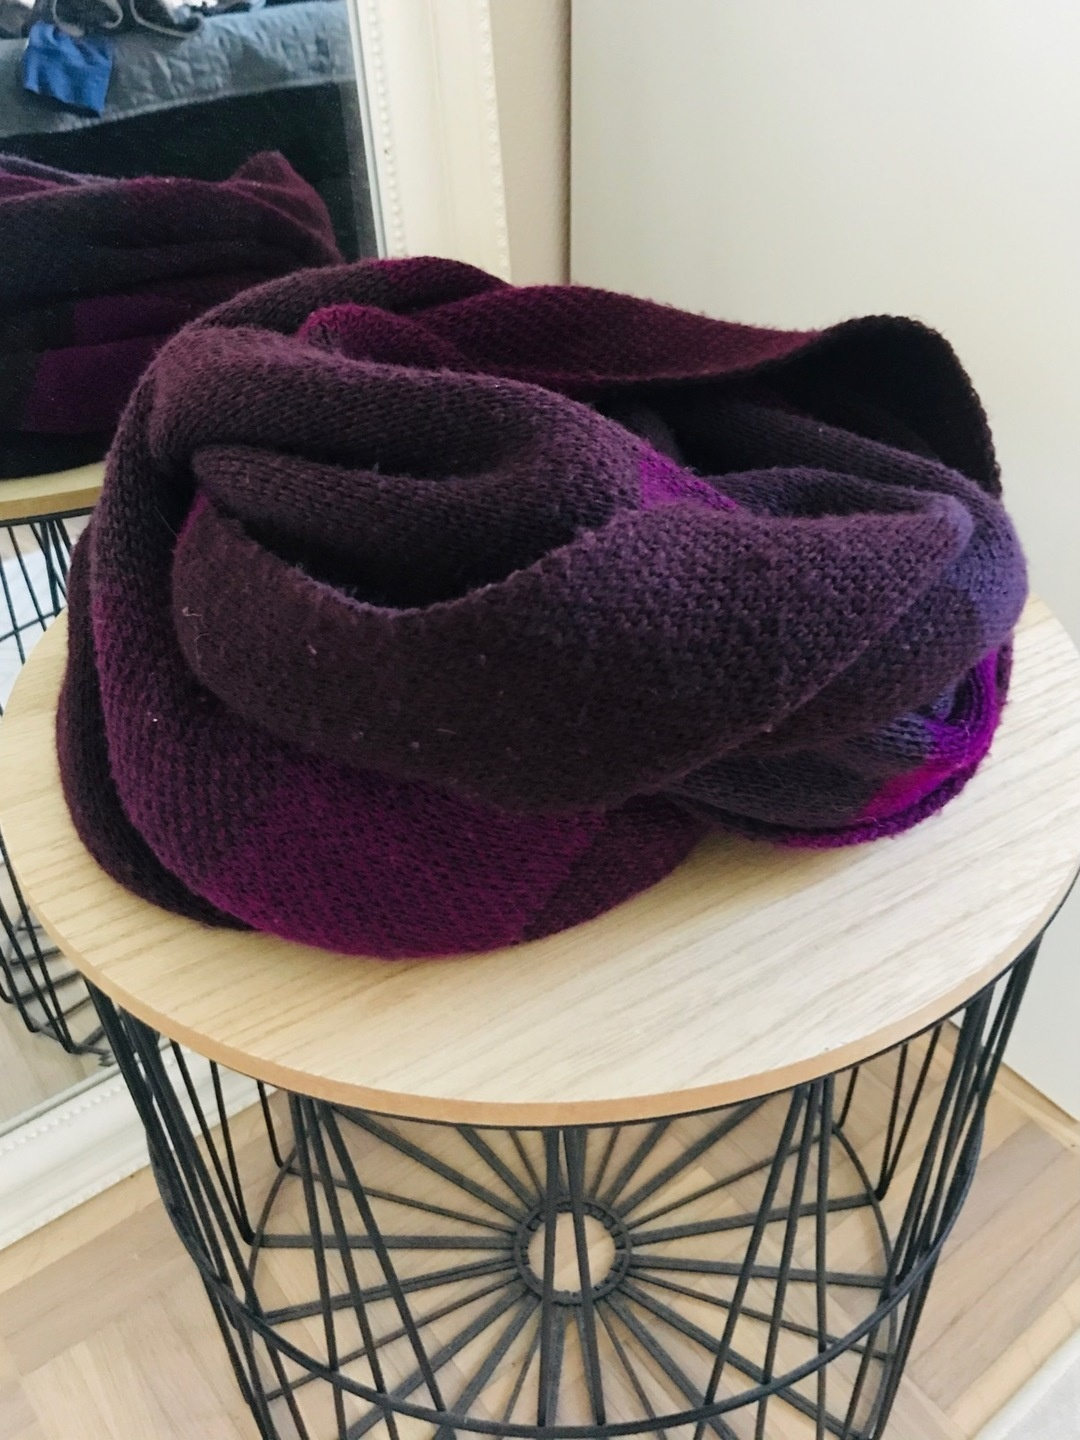 Women's scarves & shawls - GINA TRICOT photo 1